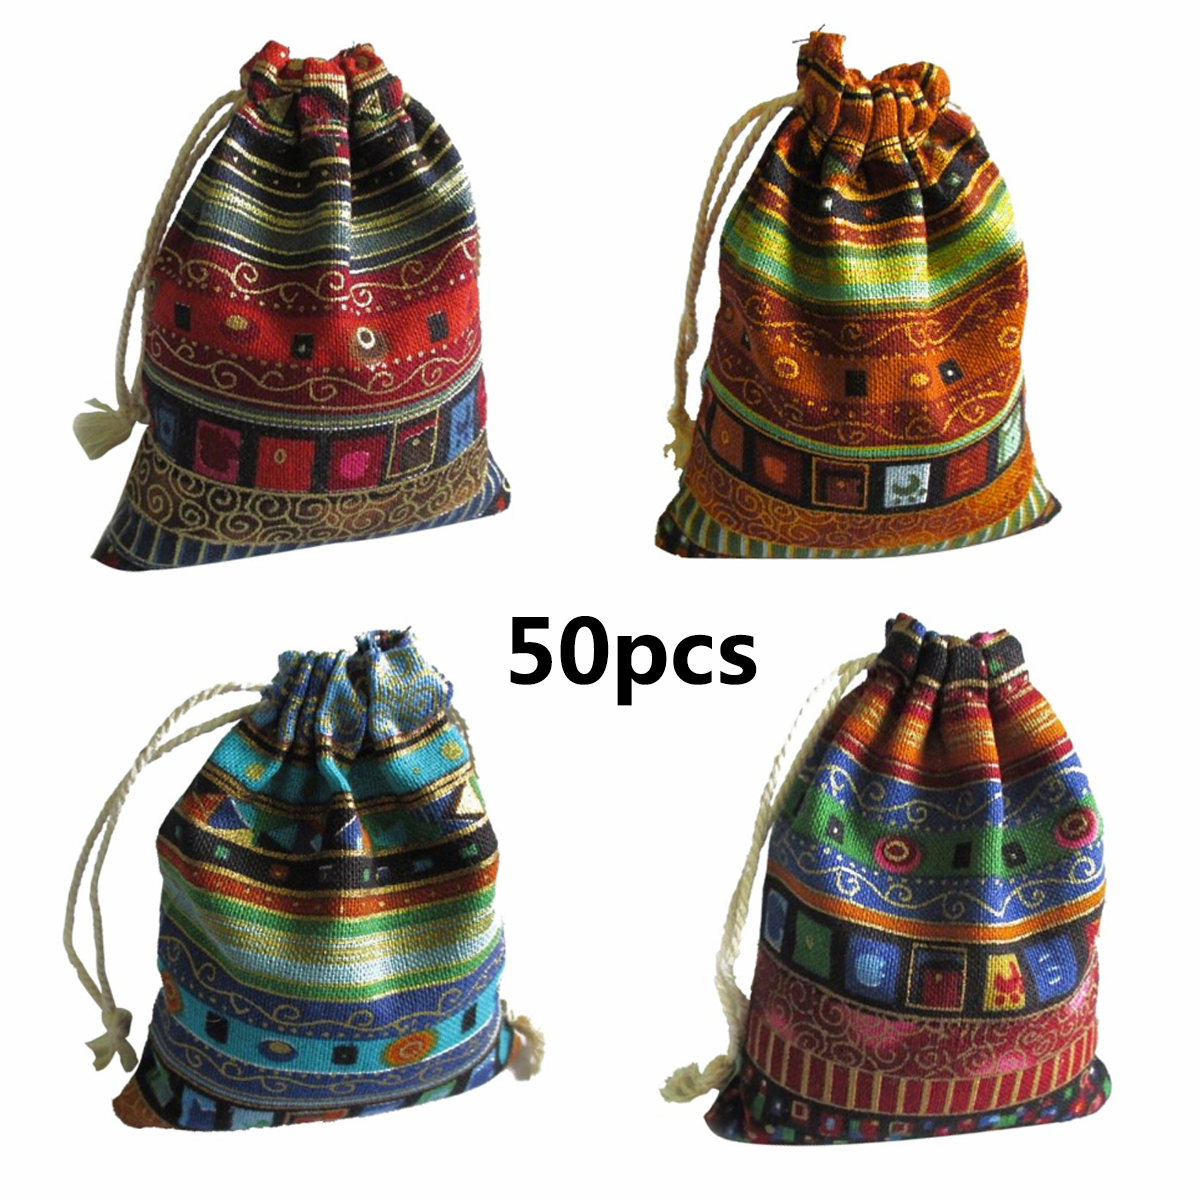 50Pcs  Cotton Jewelry Bags  Ethnic Gift Bags Drawstring Bags Christmas Jewelry Pouches Wedding/Candy Bags 9.5*12cm